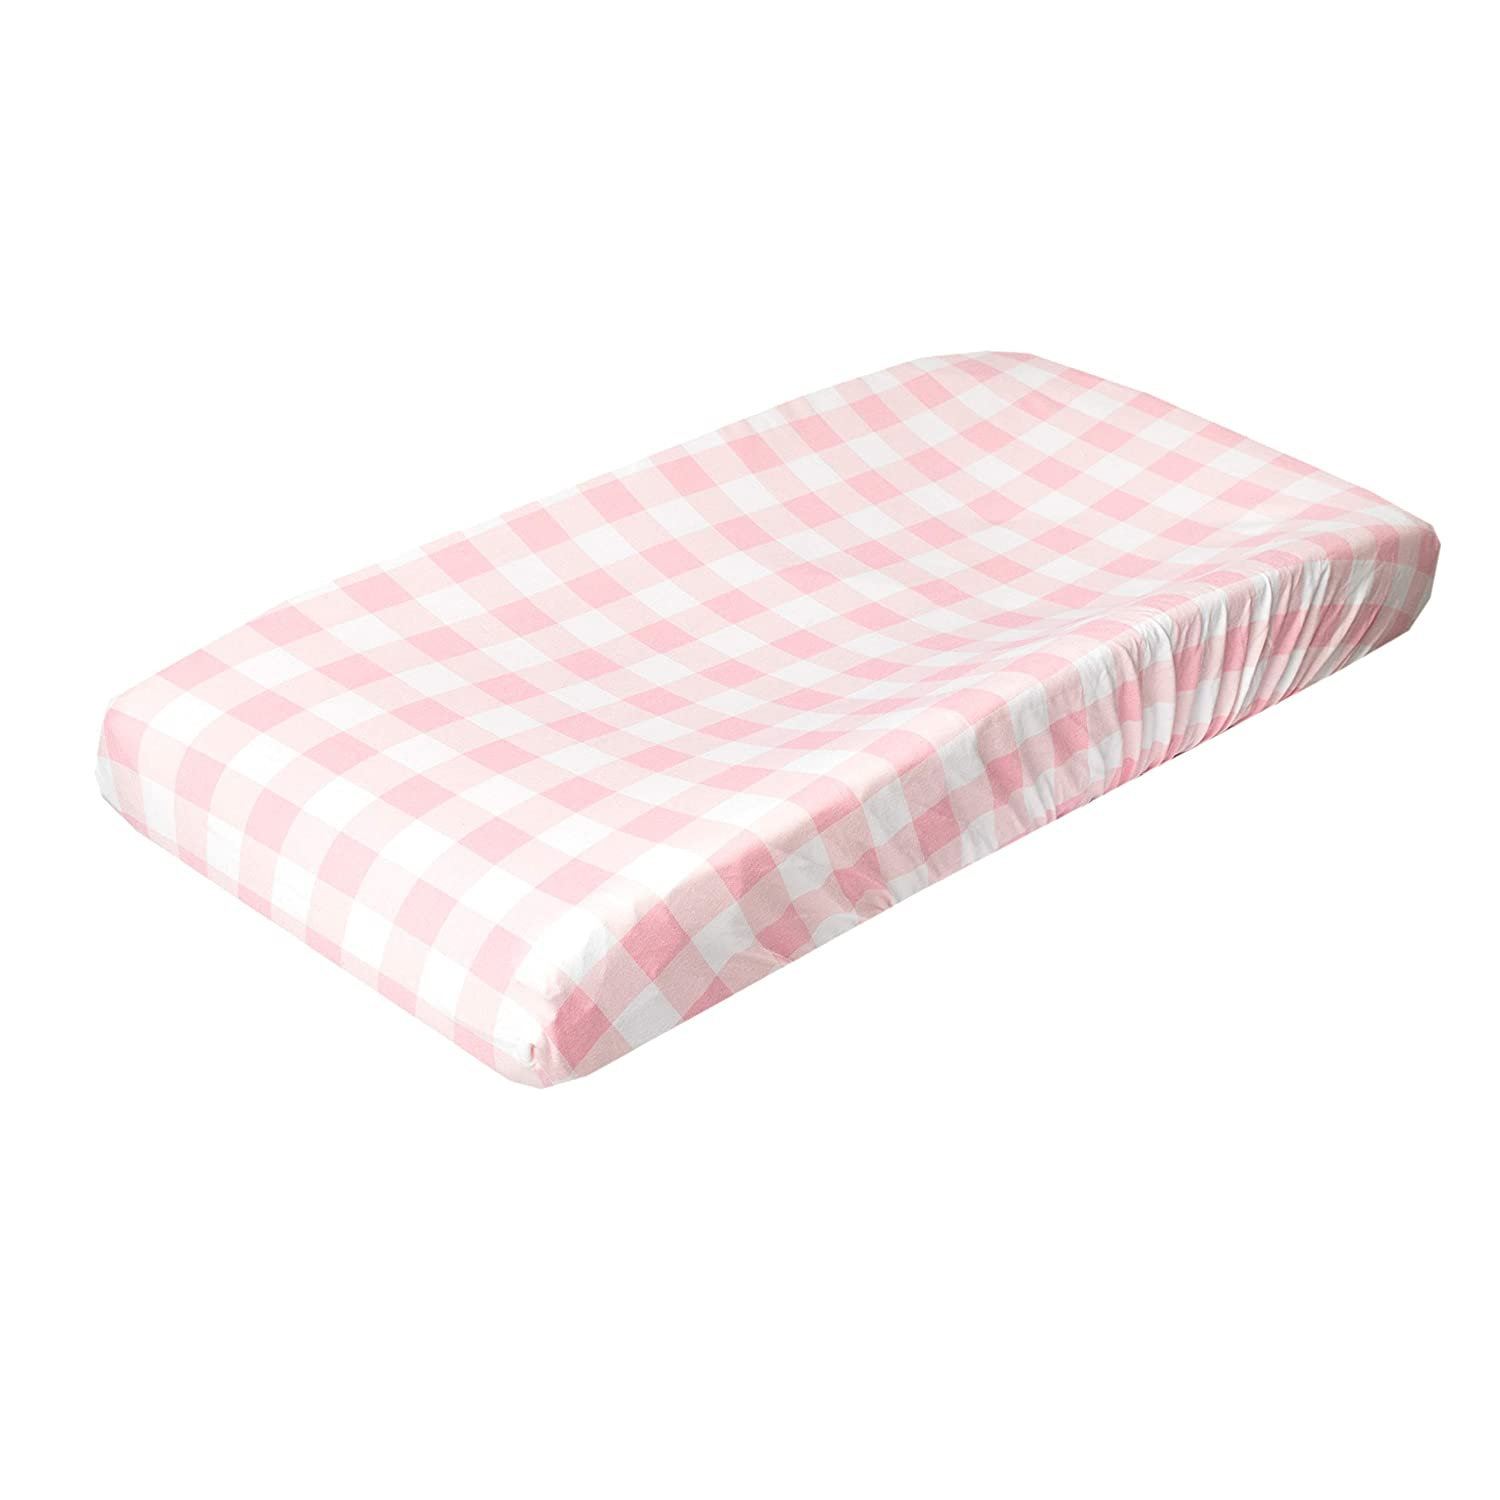 TILLYOU Jersey Knit Ultra Soft Changing Pad Cover Set-Cradle Sheet Unisex Change Table Sheets for Baby Girls and Boys-32//34 x 16-Comfortable Cozy Hypoallergenic-2 Pack Navy Blue /& Lt Green